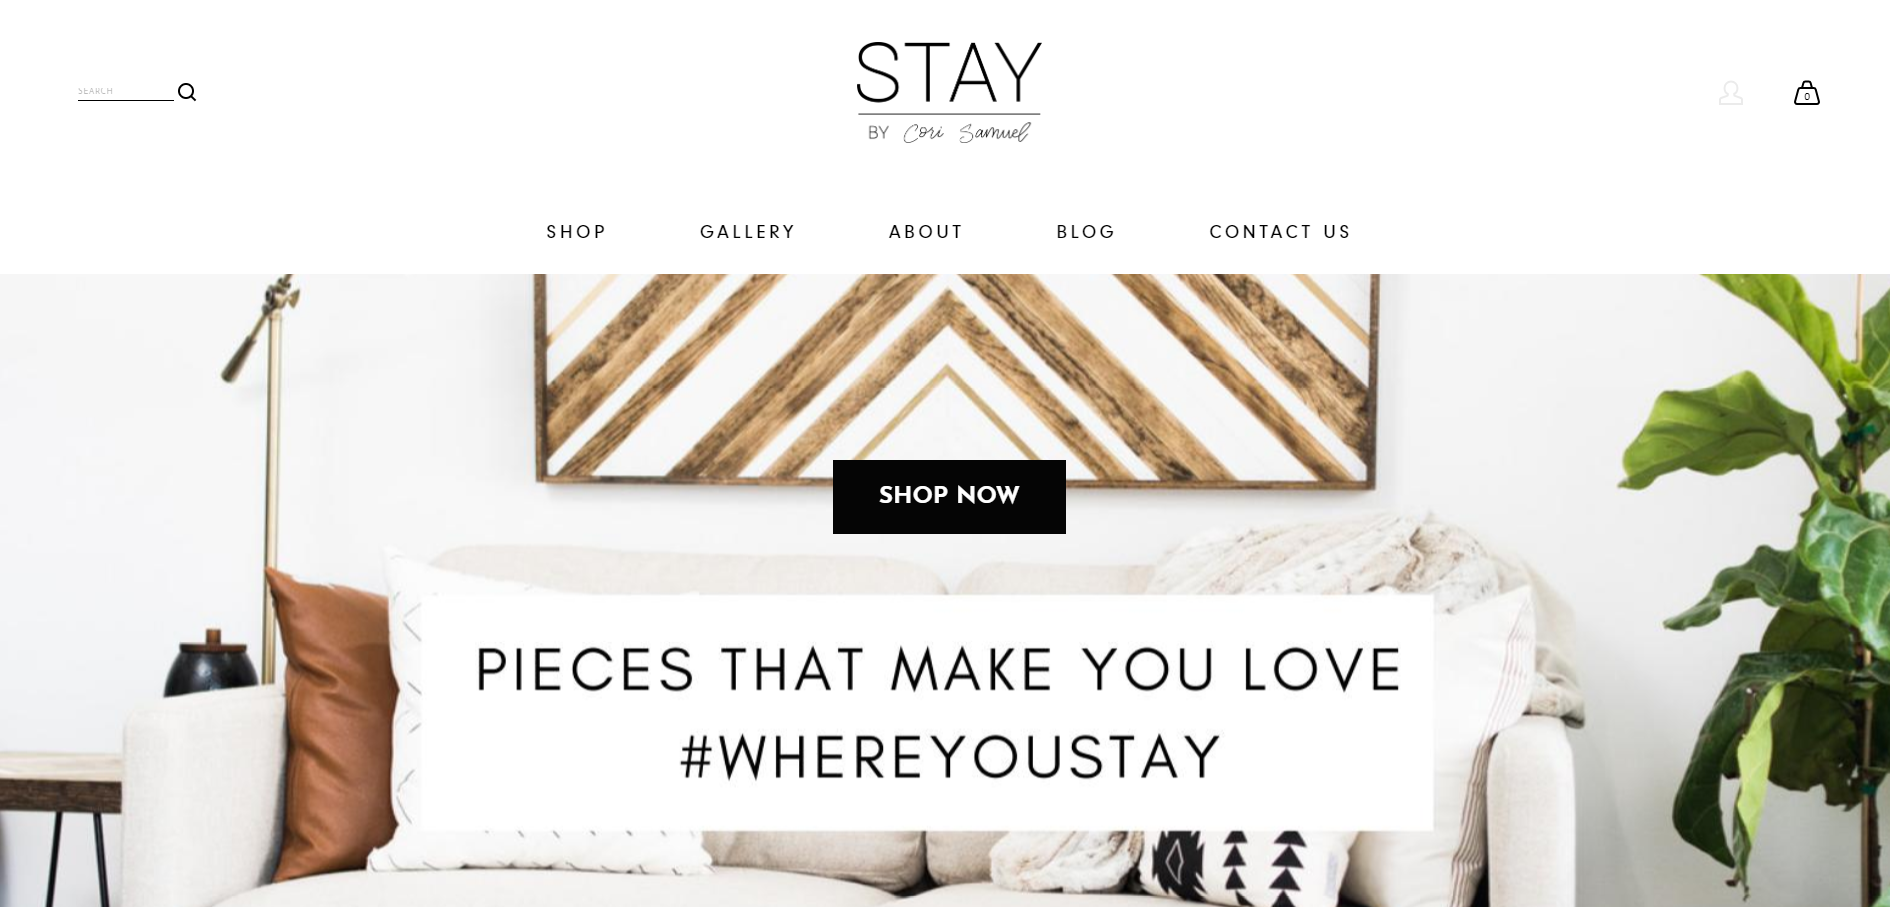 Stay by Cori Samuel requested a custom website to host their online store. I developed the site's HTML and CSS on Squarespace, and collaborated with the owners for their site's content. The final project displays a user-friendly, aesthetically clean, e-commerce shop. Find the published site  here .